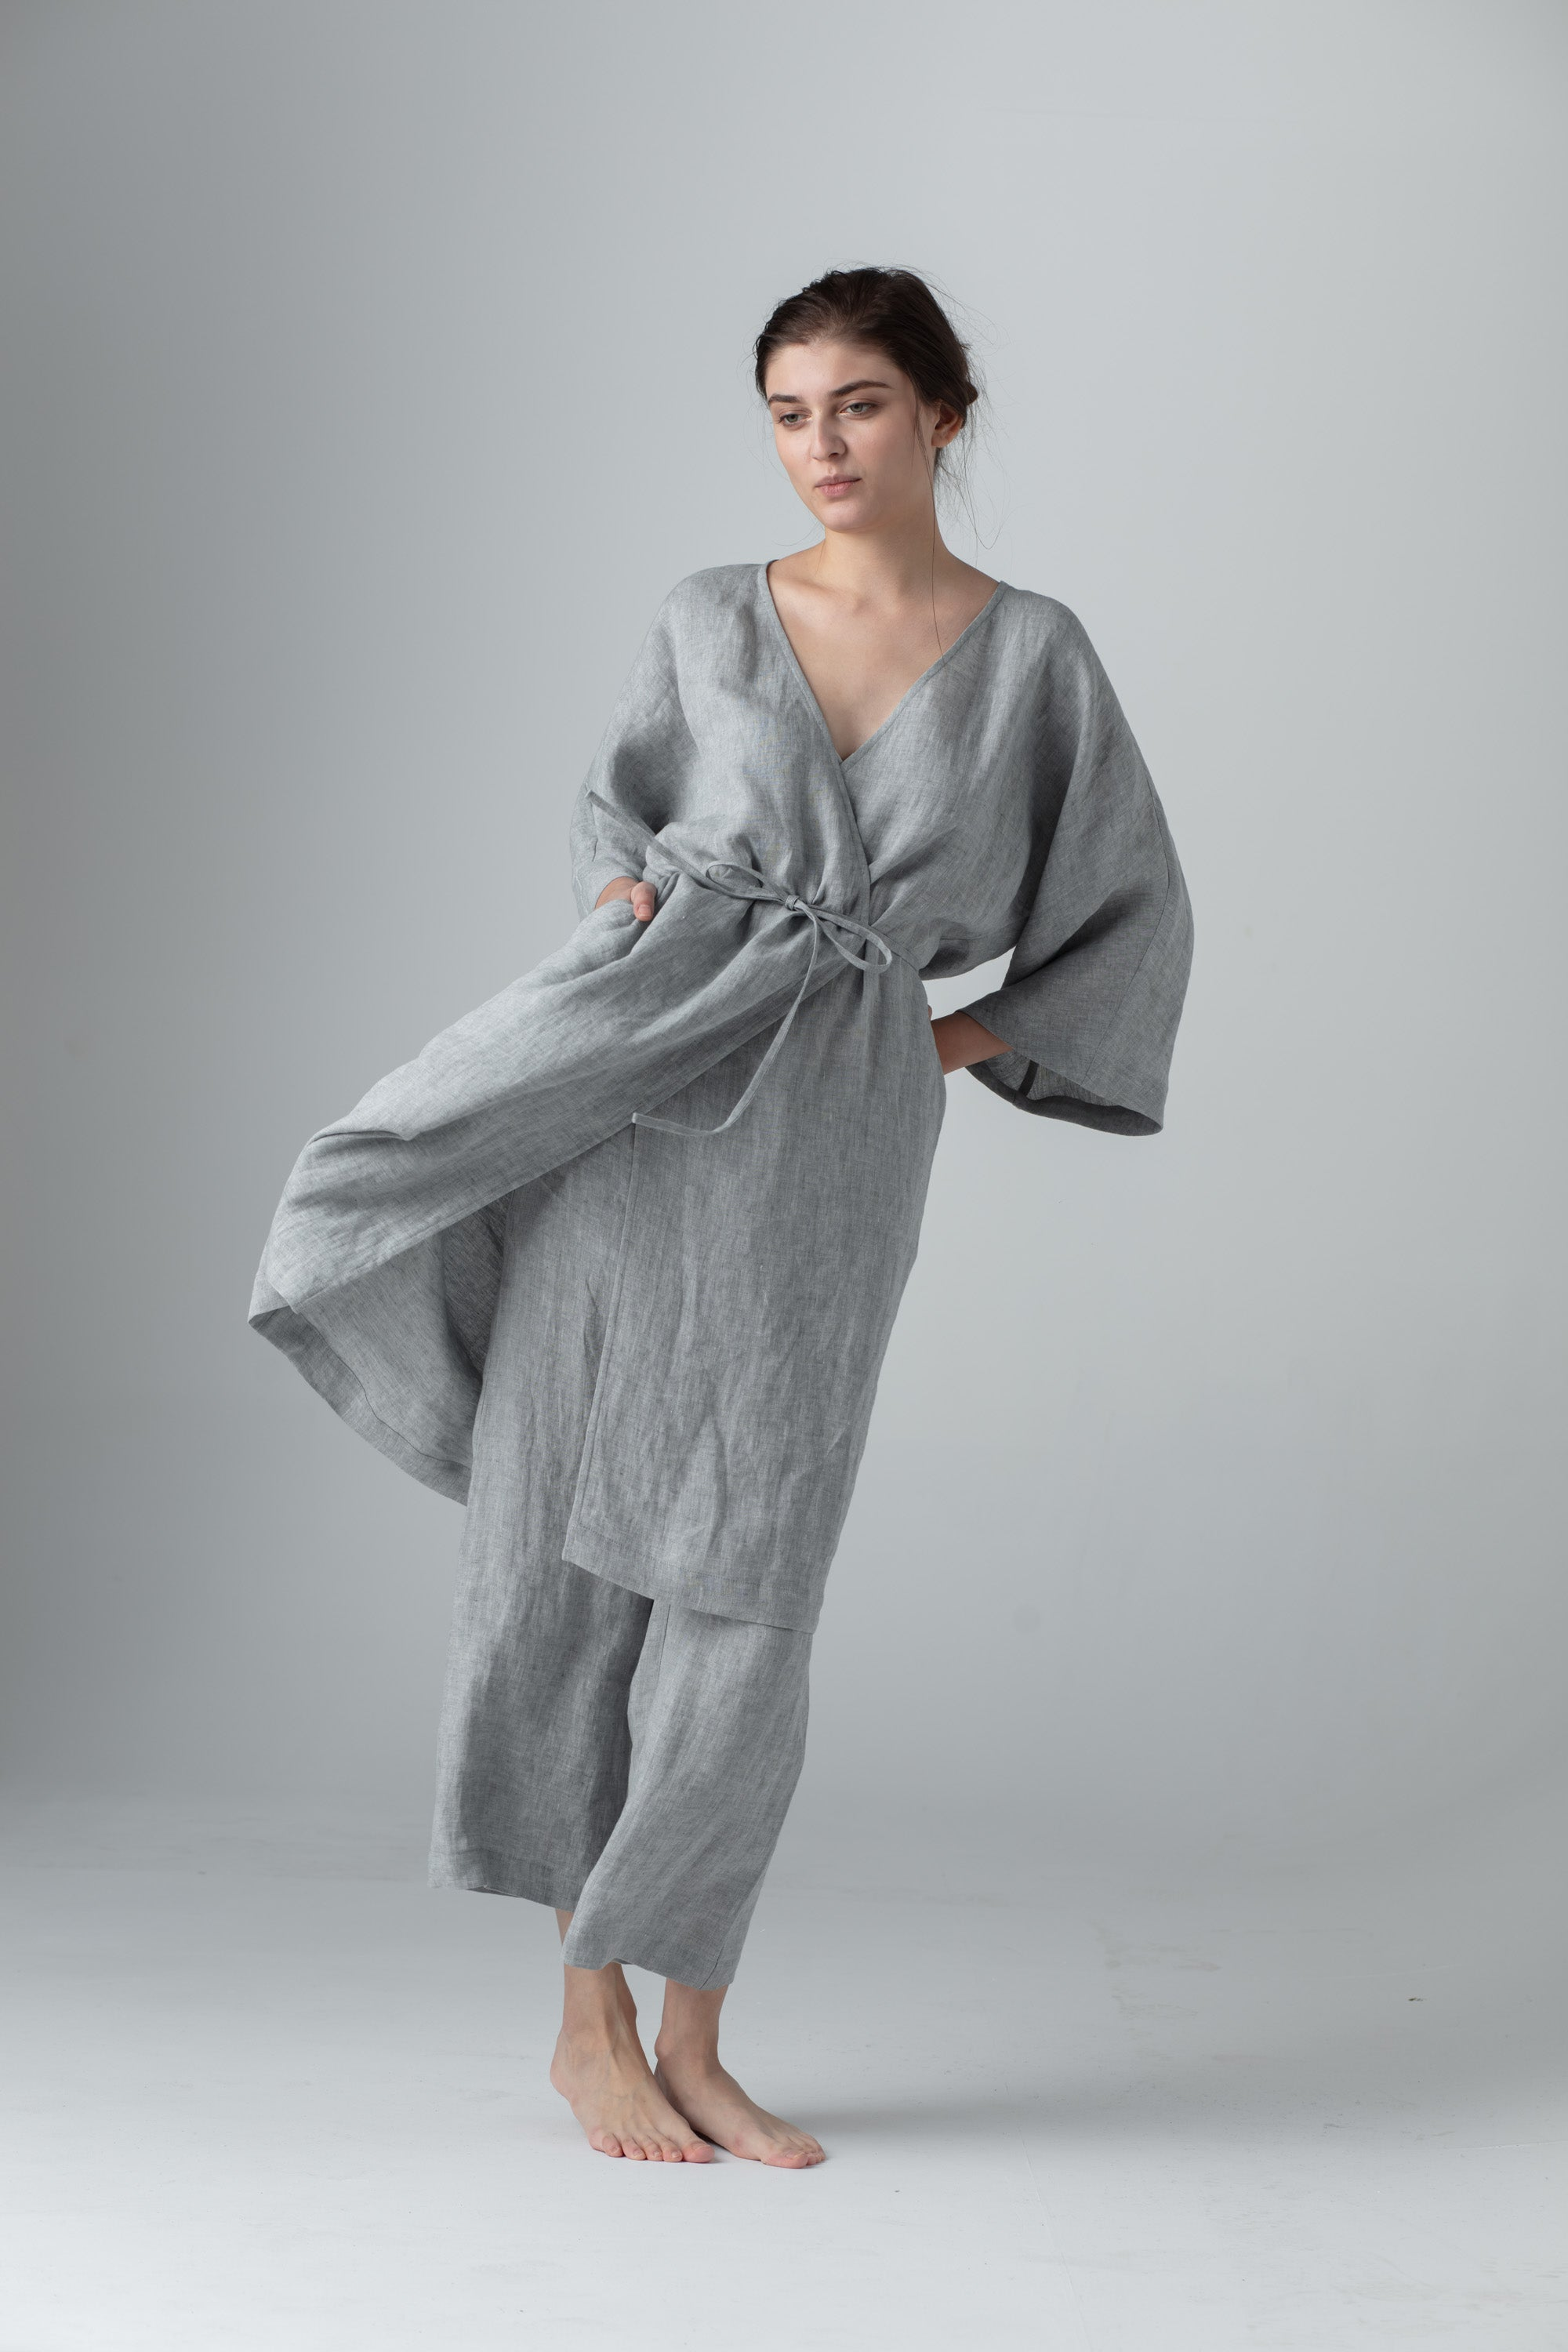 Linen robe made in Europe